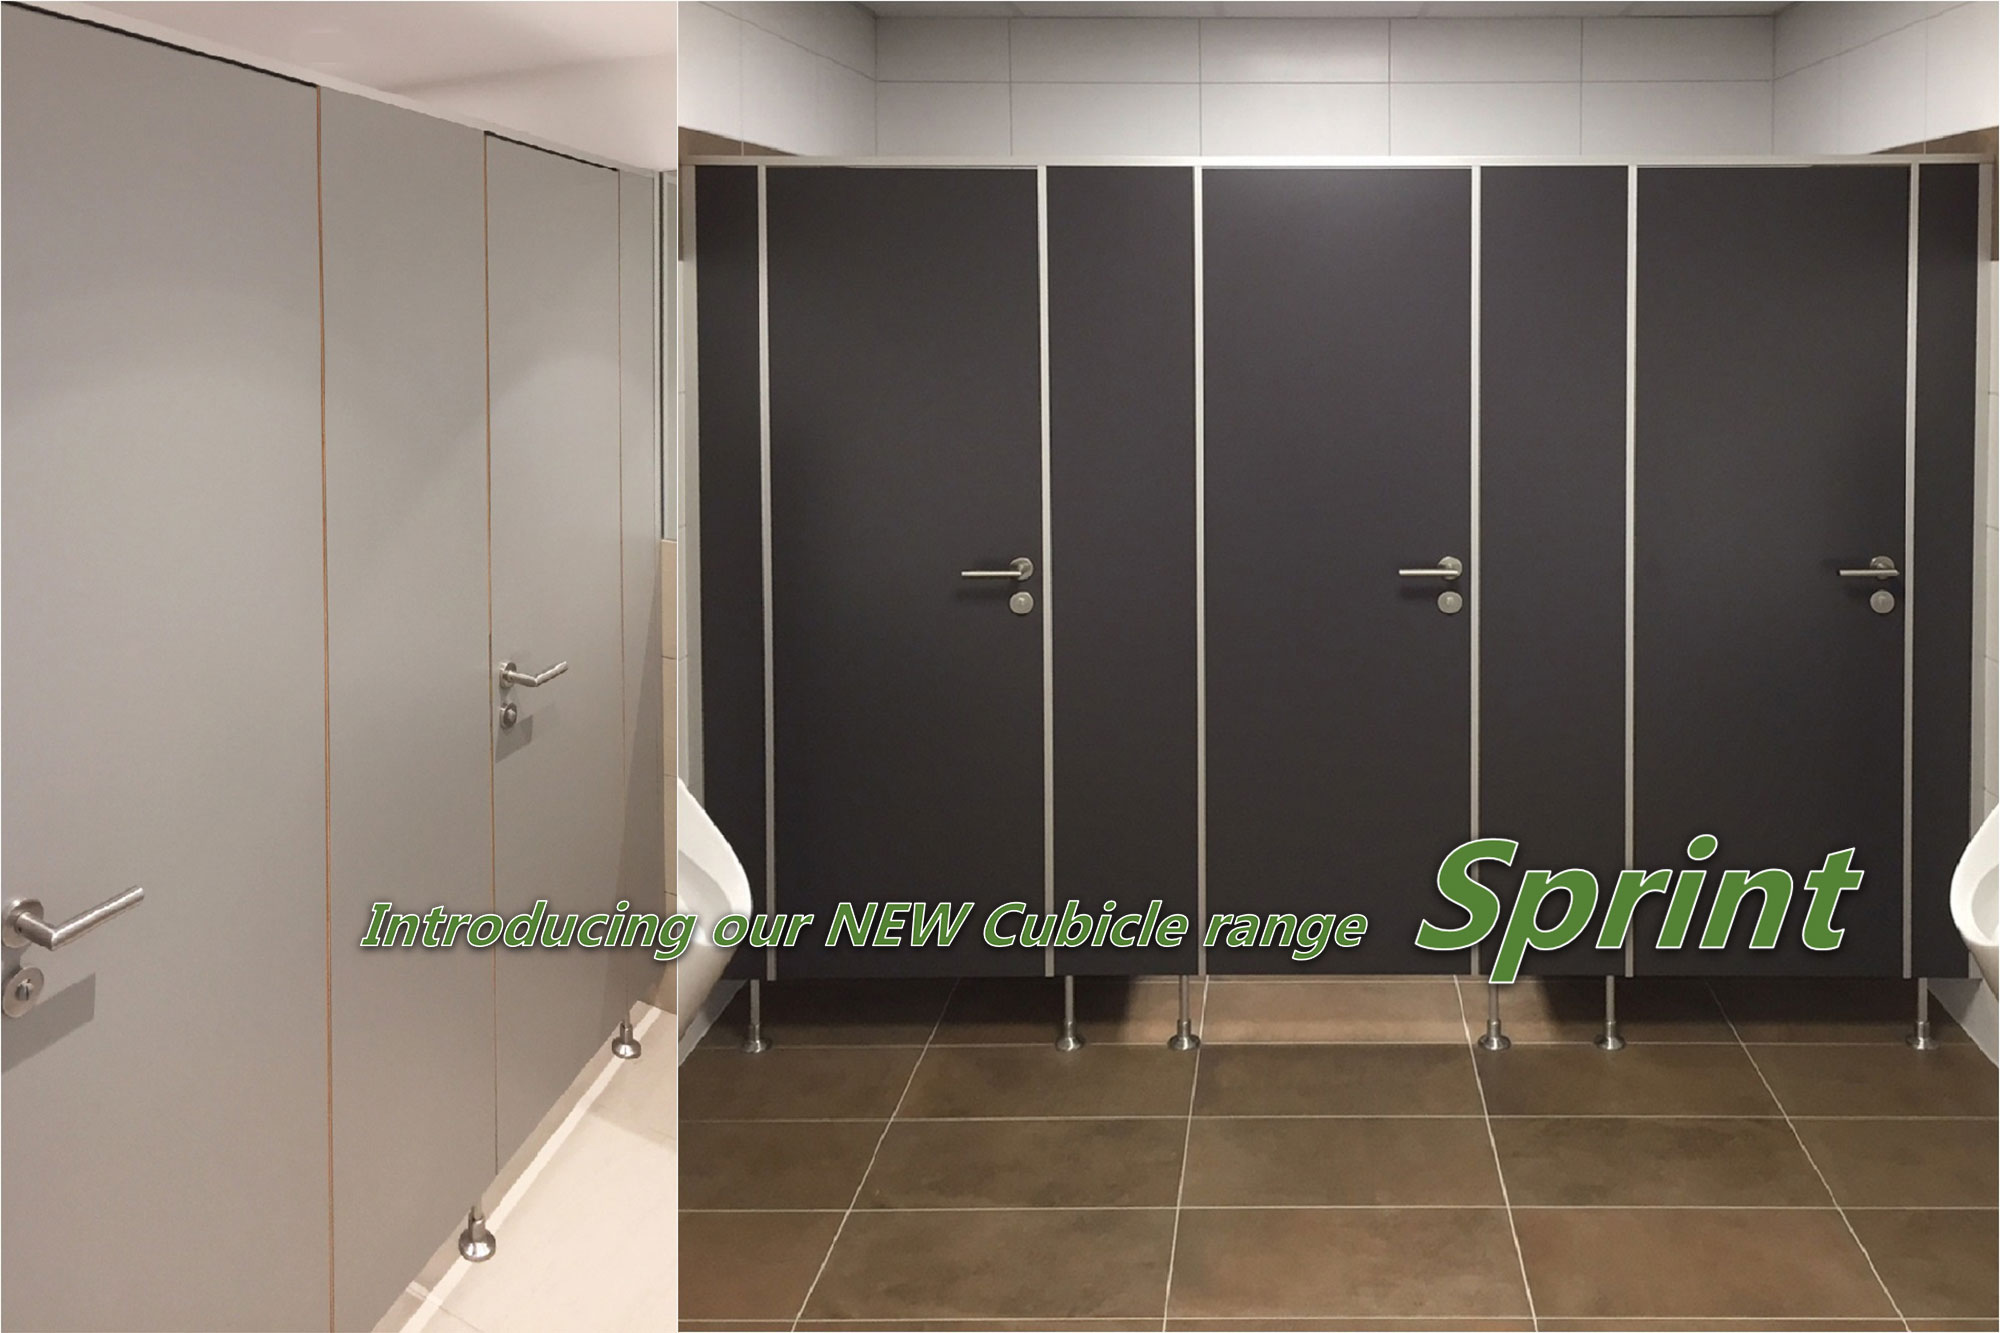 Sprint Cubicles